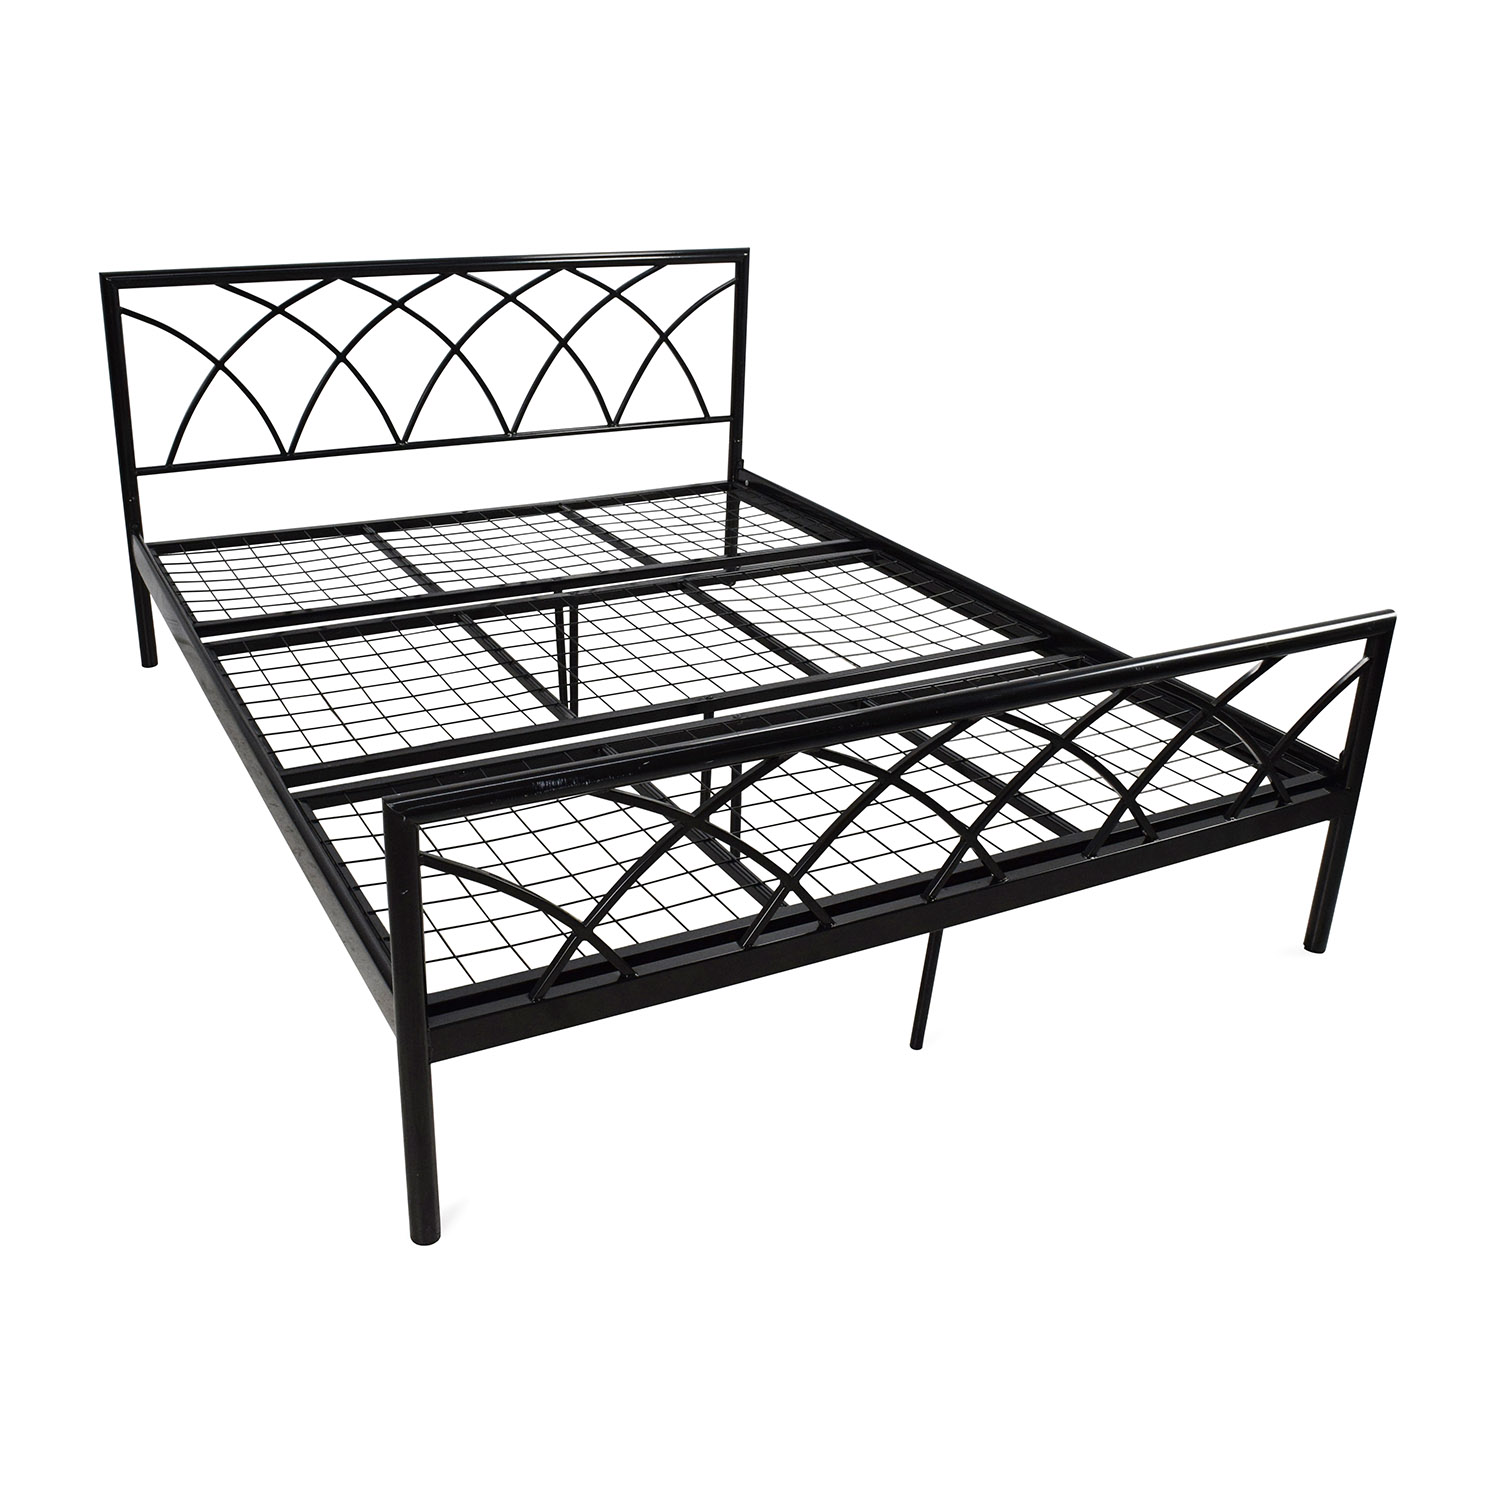 Bed And Bed Frame For Sale